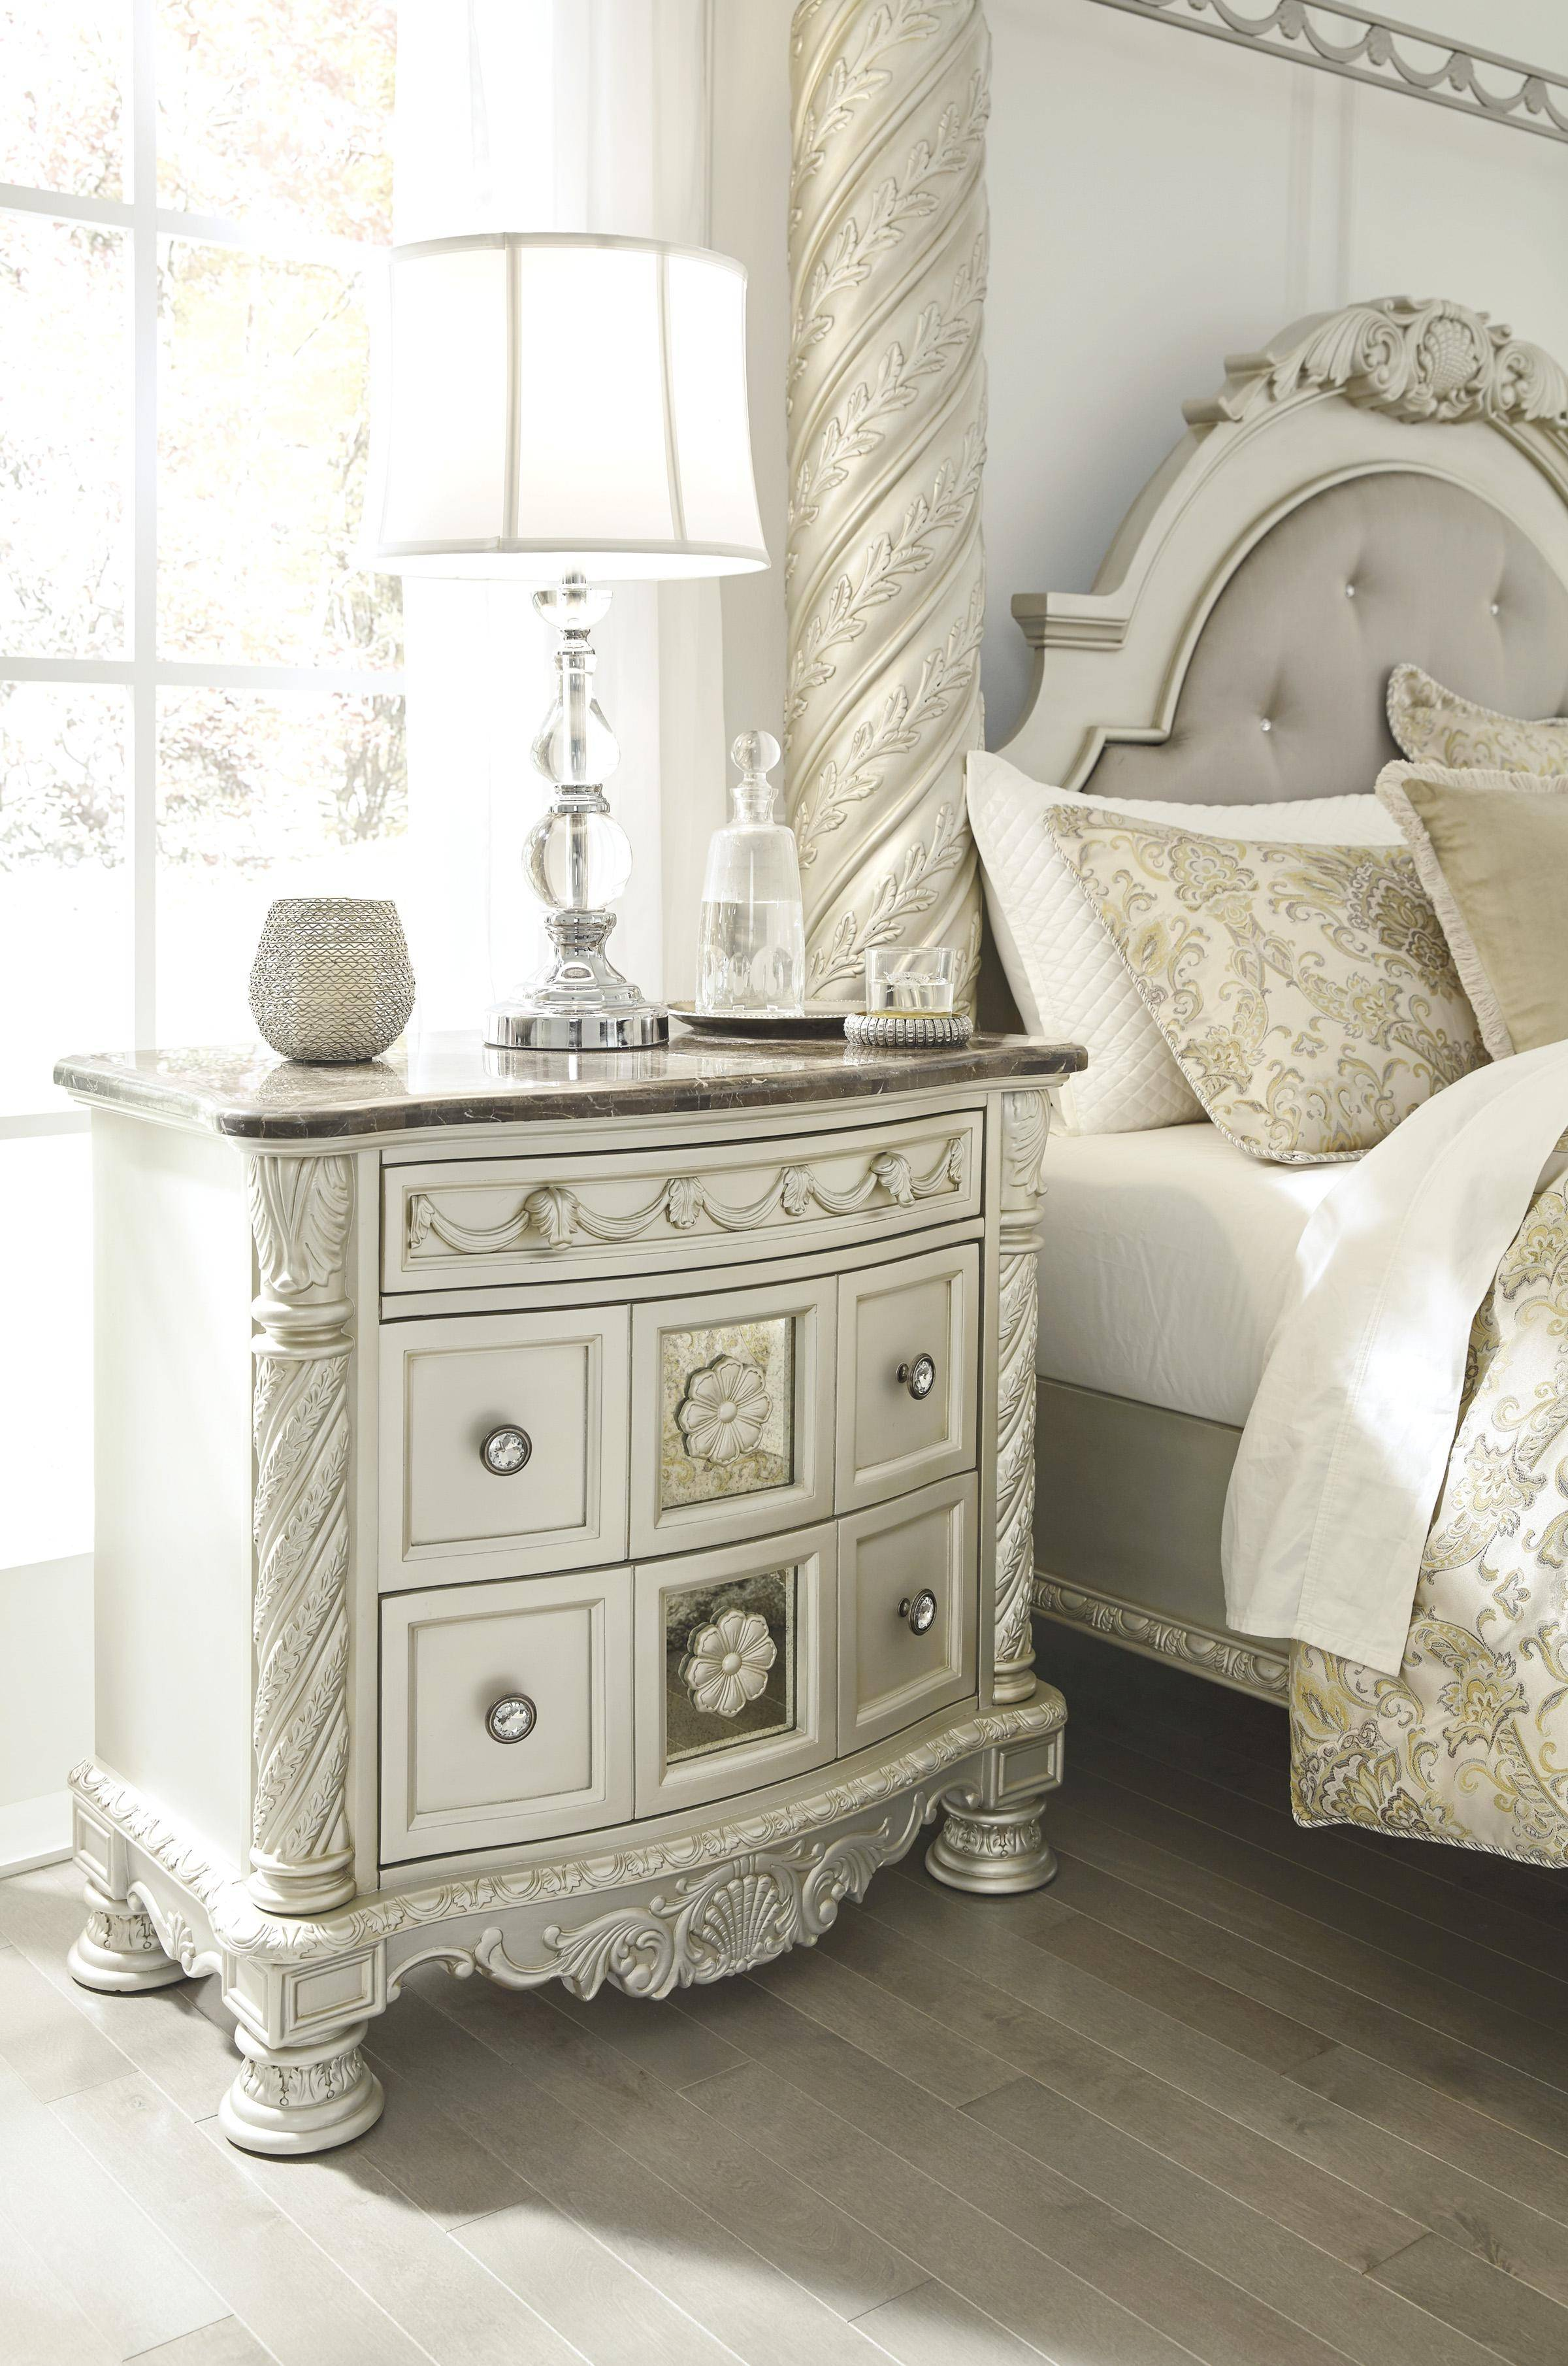 Ashley Cassimore B750 Queen Size Panel Bedroom Set 6pcs In Pearl Silver B750 57 54 96 31 36 46 93 2 Set 6 Buy Online